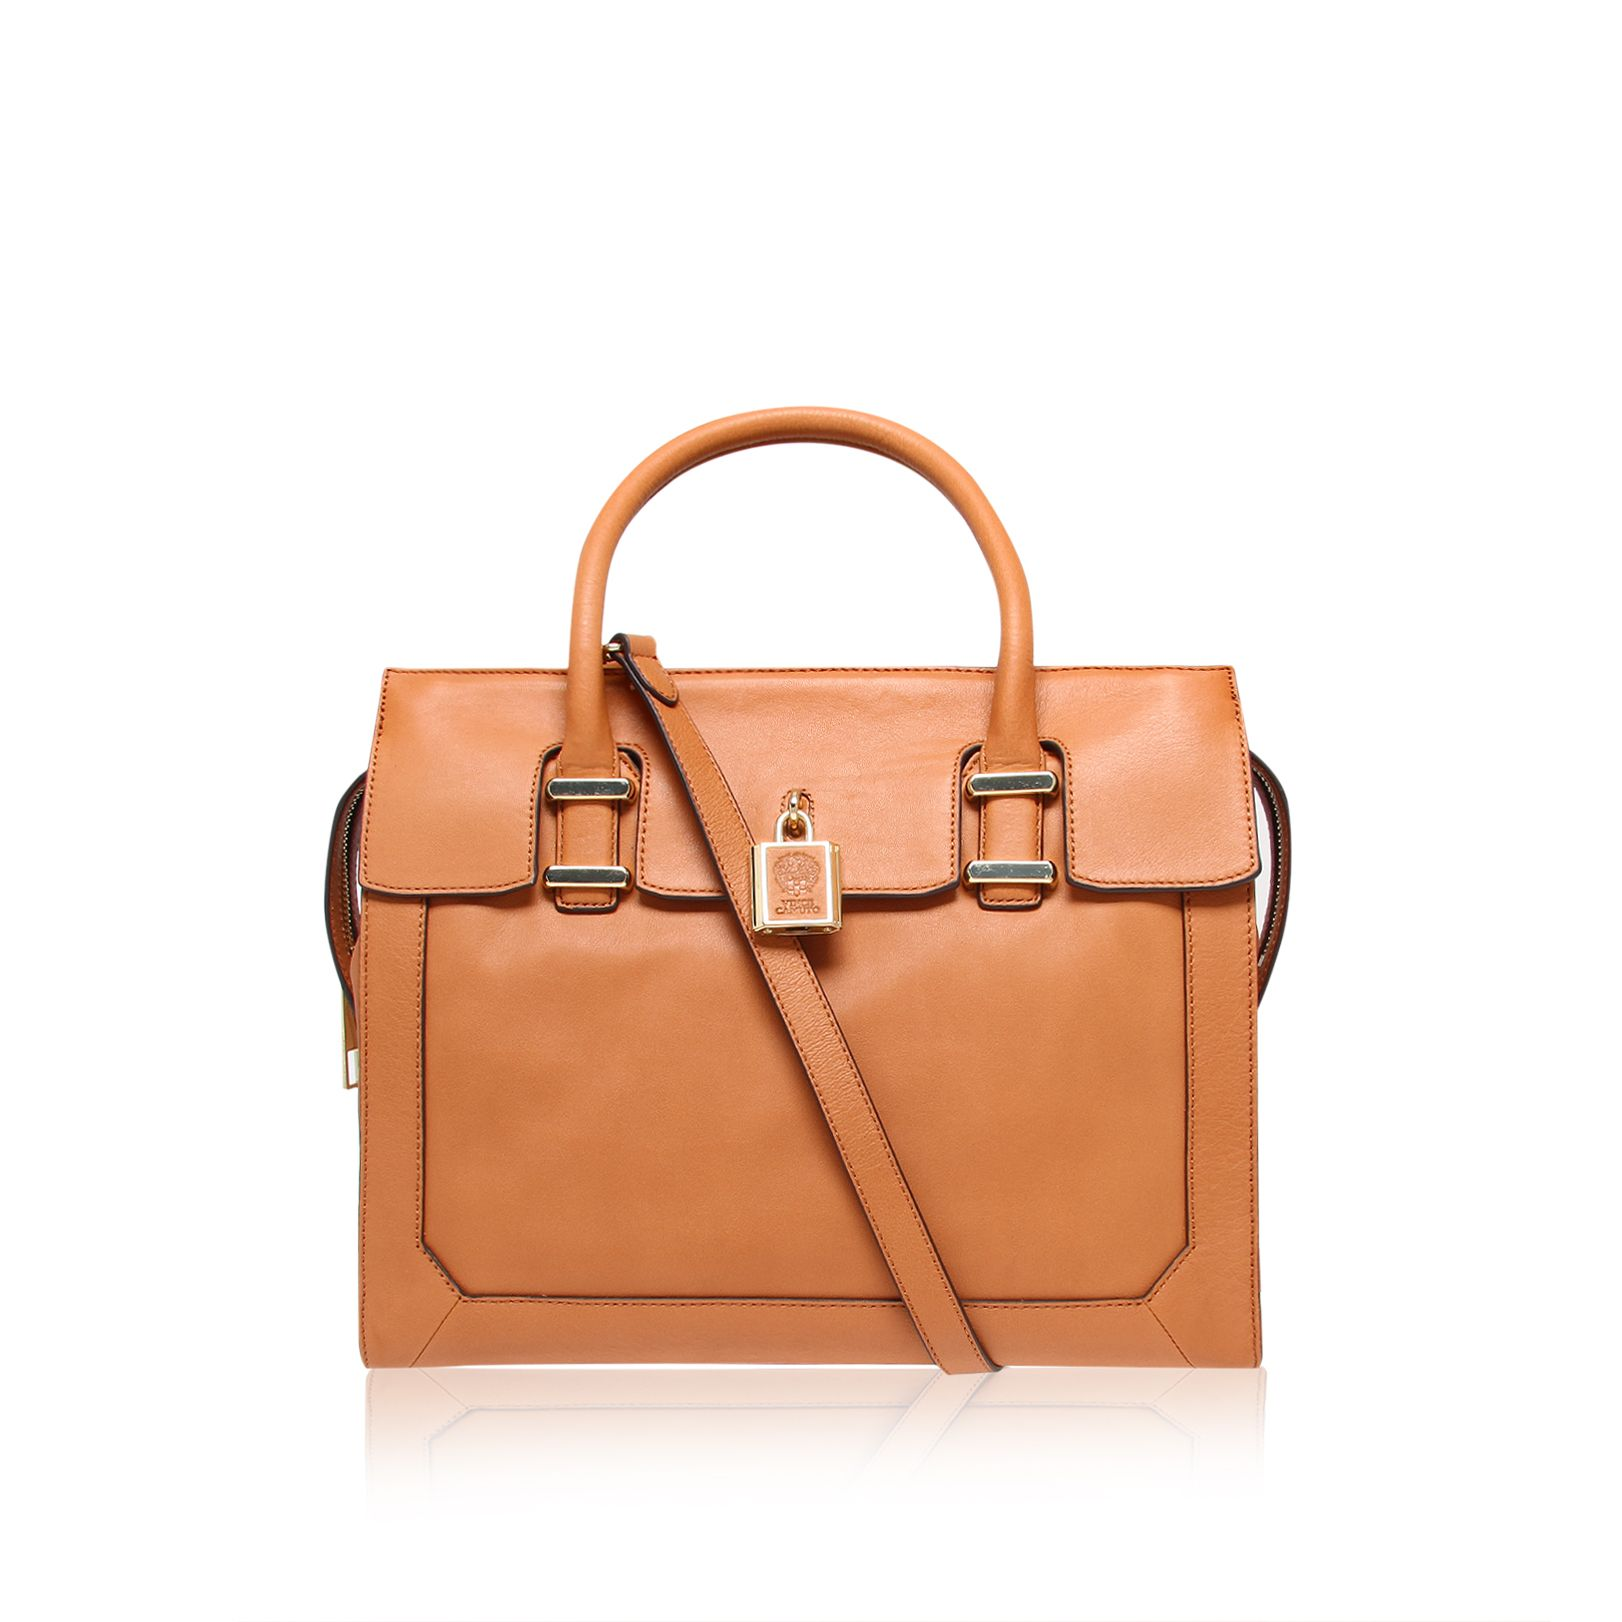 Heidi tan satchel